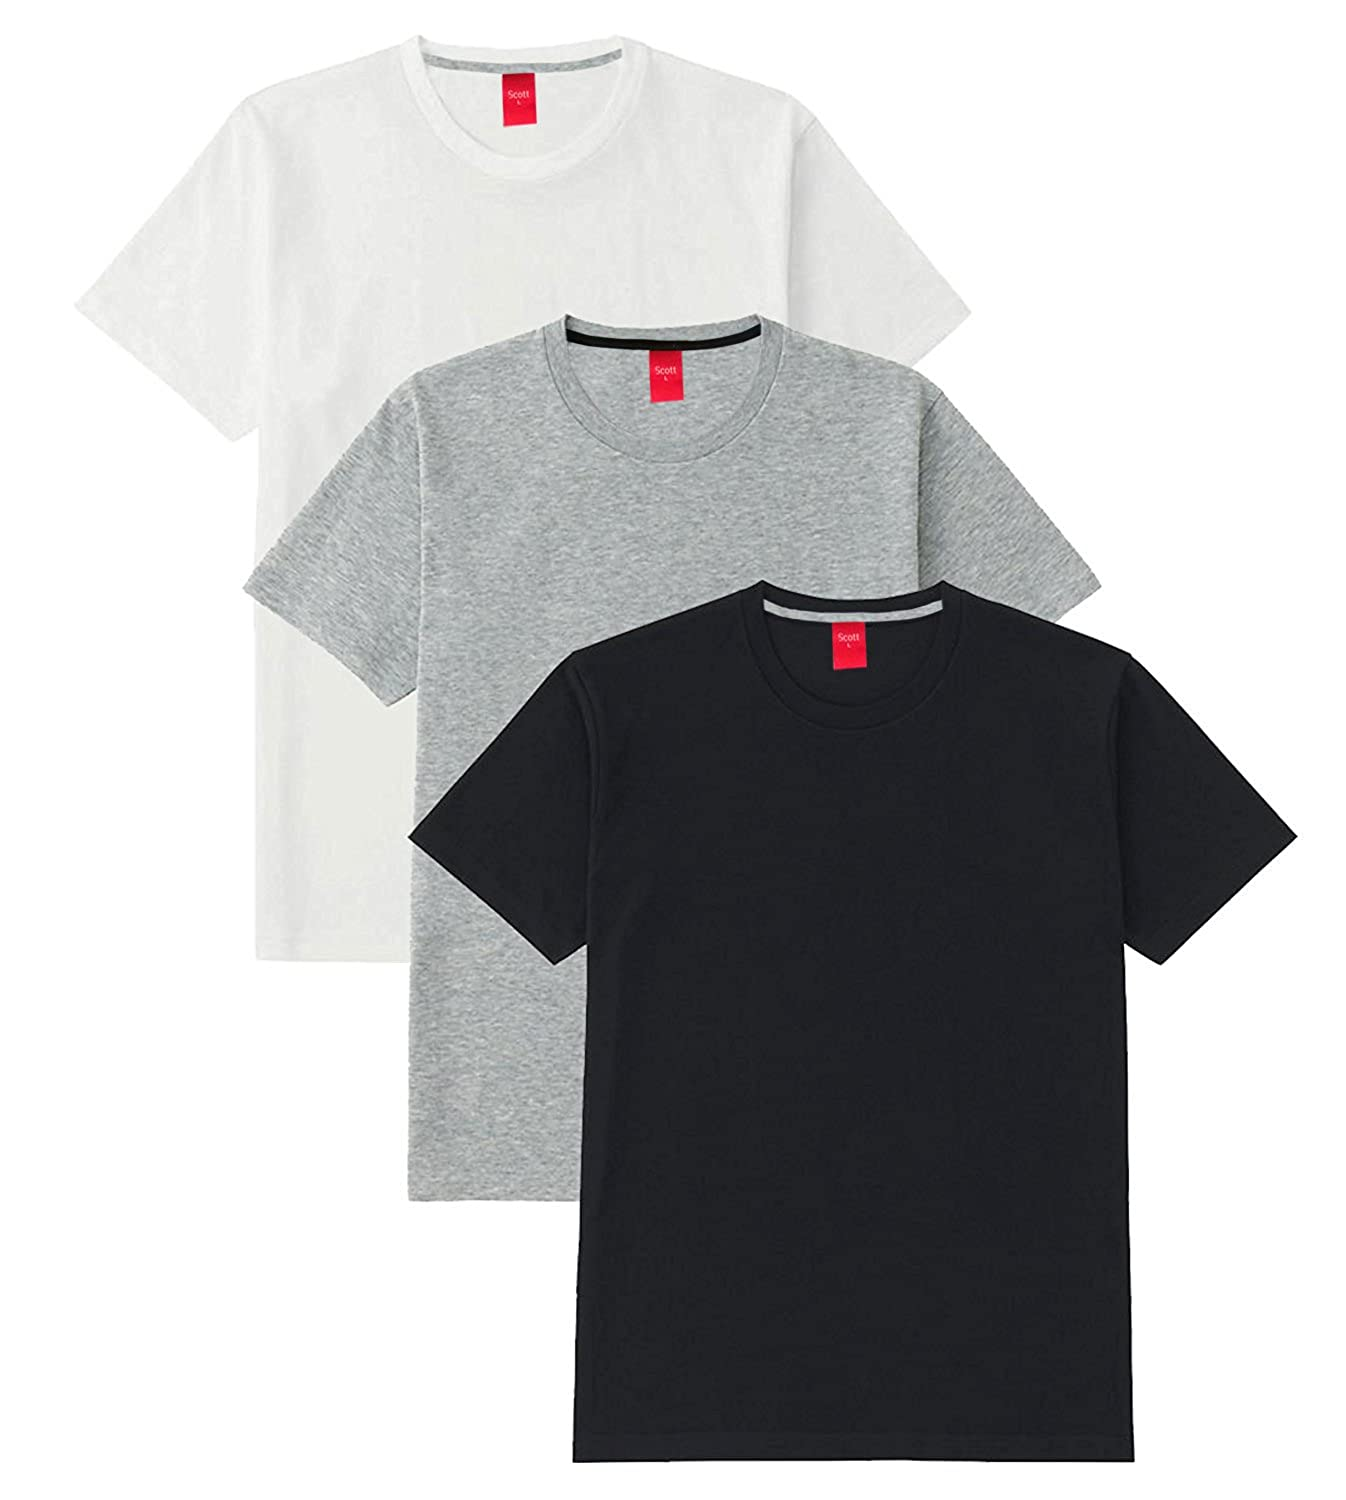 Black t shirt v shape - Scott Men S Basic Cotton Round Neck Half Sleeve Solid T Shirts Pack Of 3